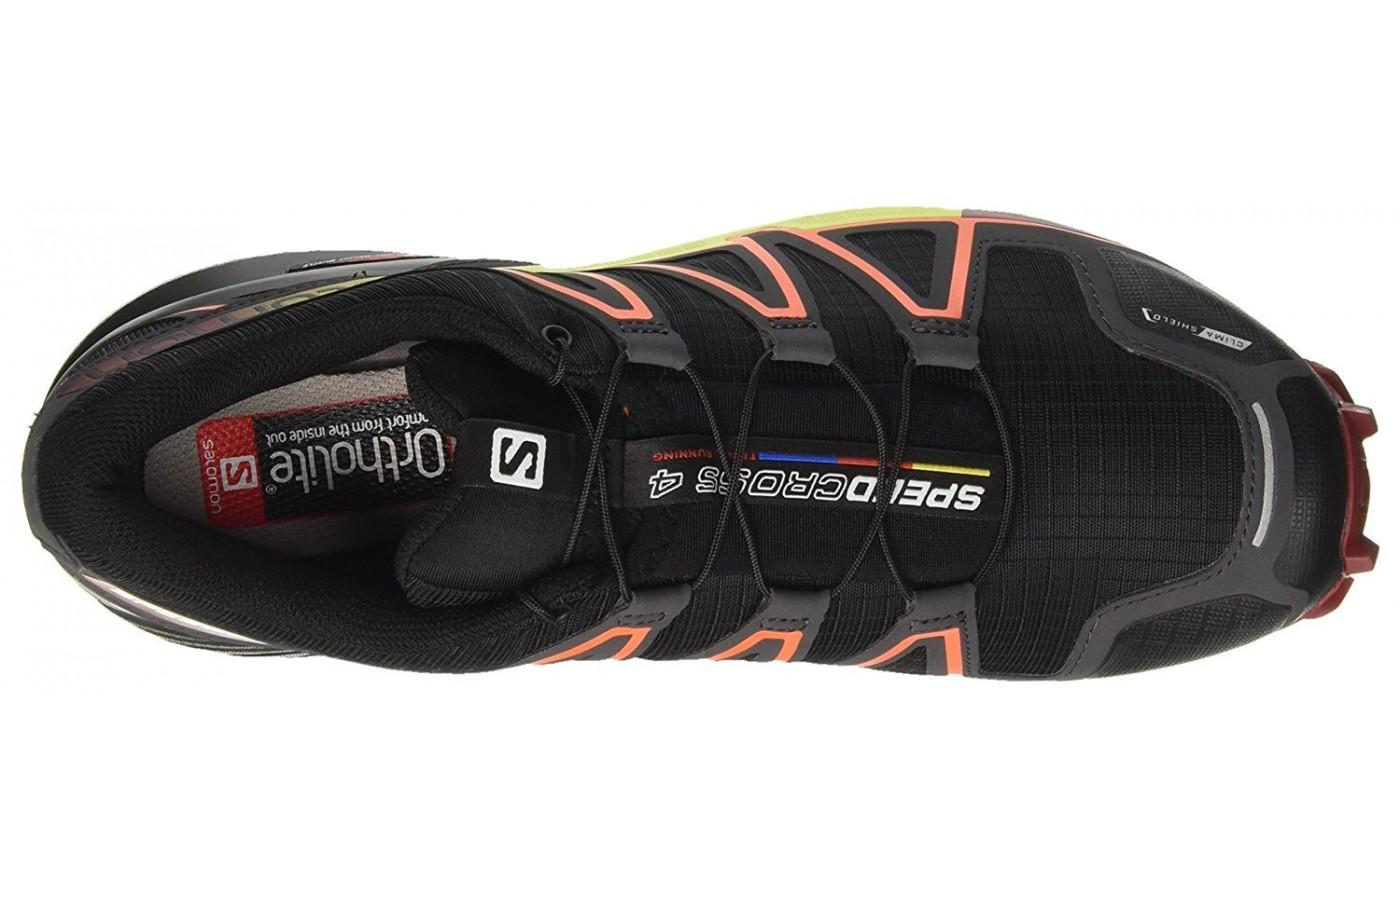 The ortholite sock liner keeps the foot dry and free from odor and bacteria